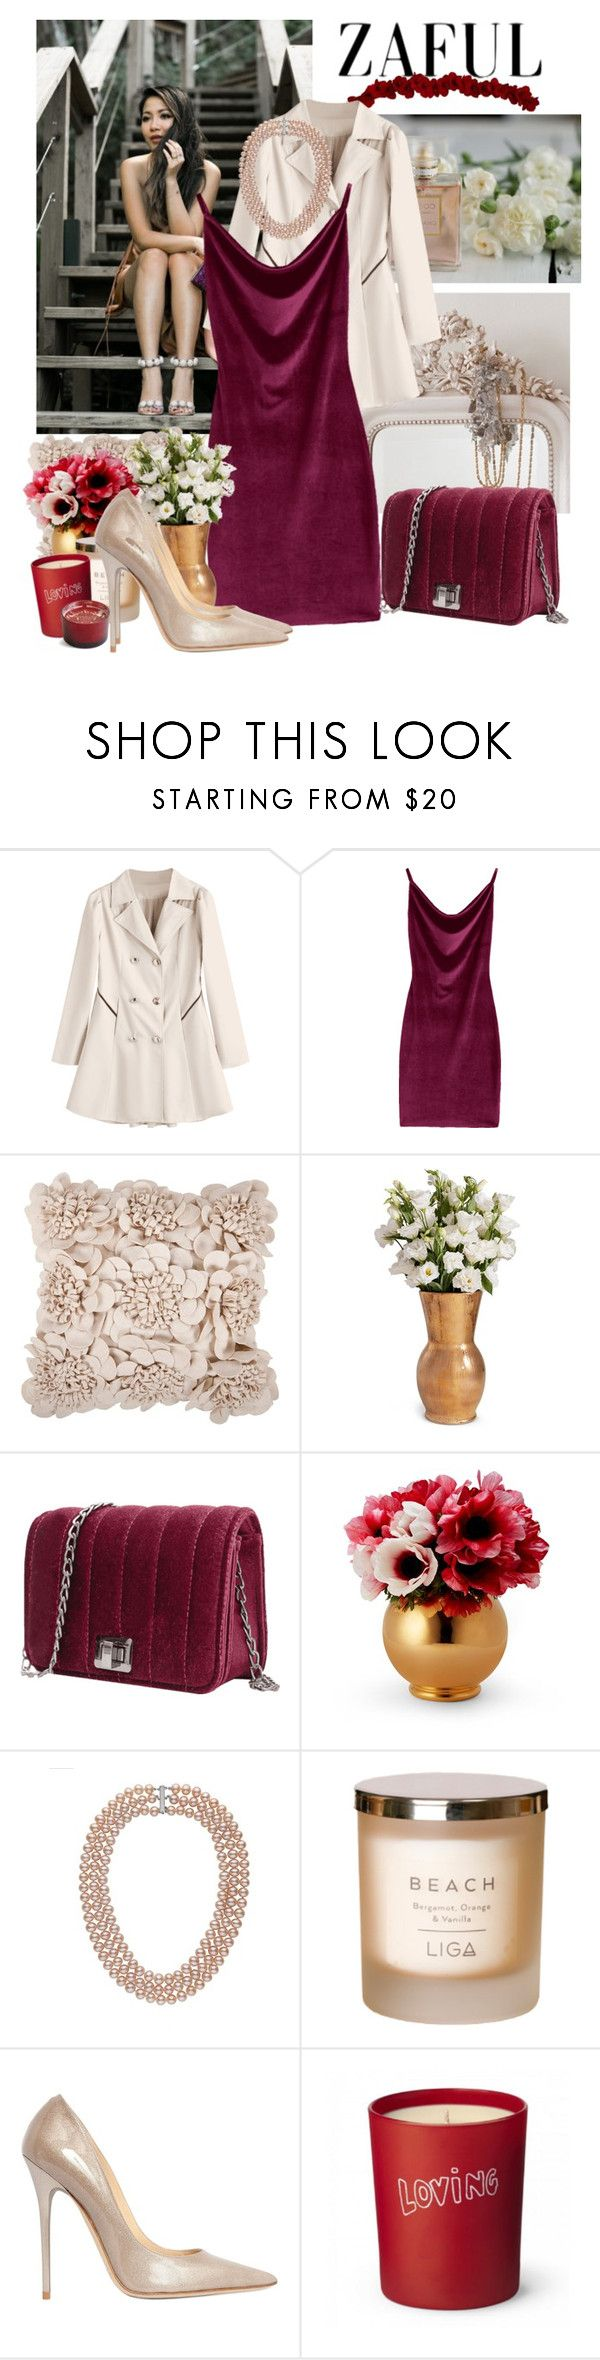 """""""Disco outfit"""" by moni4e ❤ liked on Polyvore featuring Etiquette, Artisan Weaver, Morphic and Jimmy Choo"""